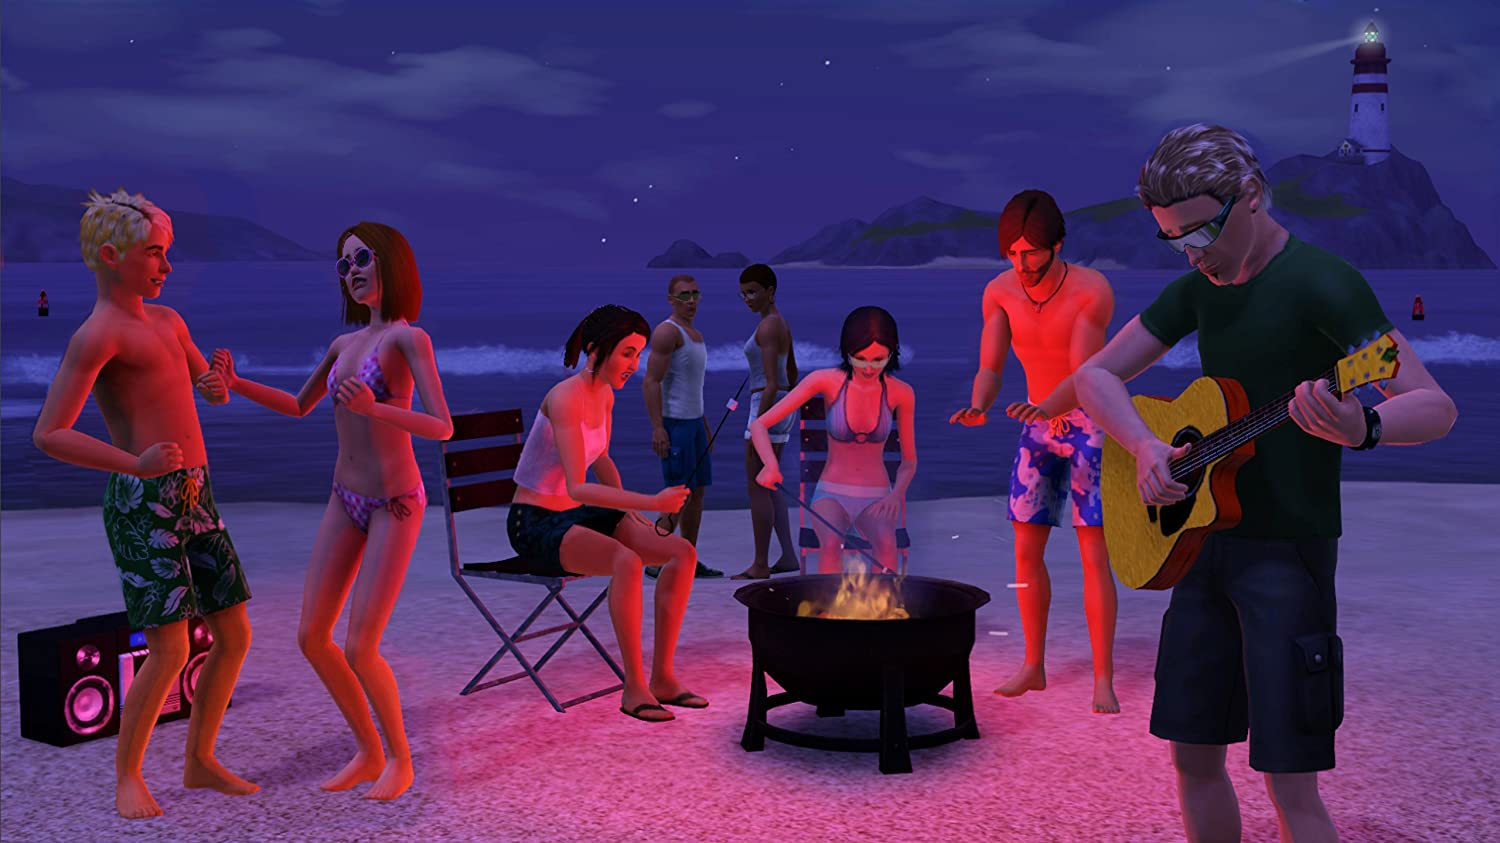 How to install the sims 3 starter pack on pc - How To Install The Sims 3 Starter Pack On Pc 48